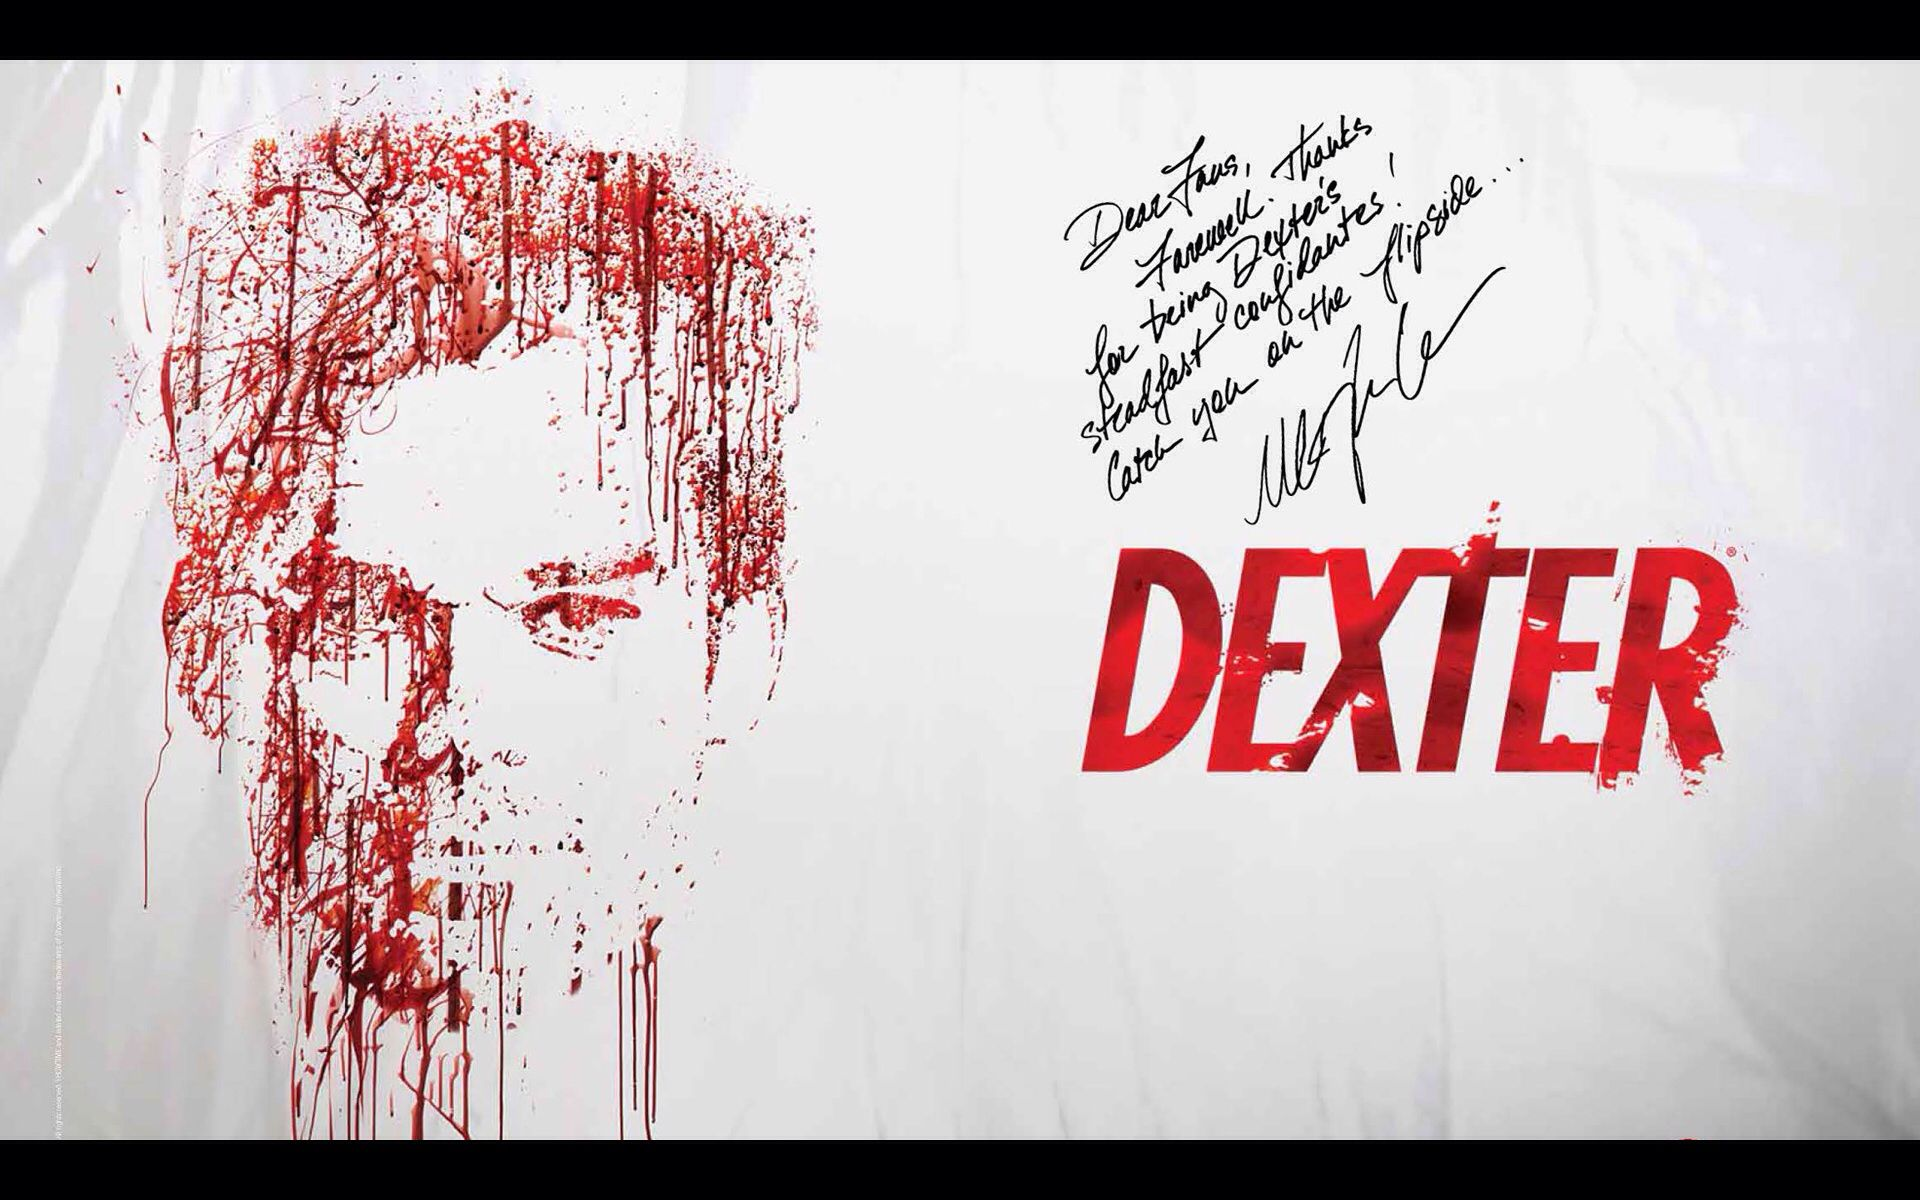 Dexter Autographed Book I Own The Complete Season In The Slide Gift Box Set With The Book It Looks Just Like His Bloo Dexter Wallpaper Dexter Dexter Quotes